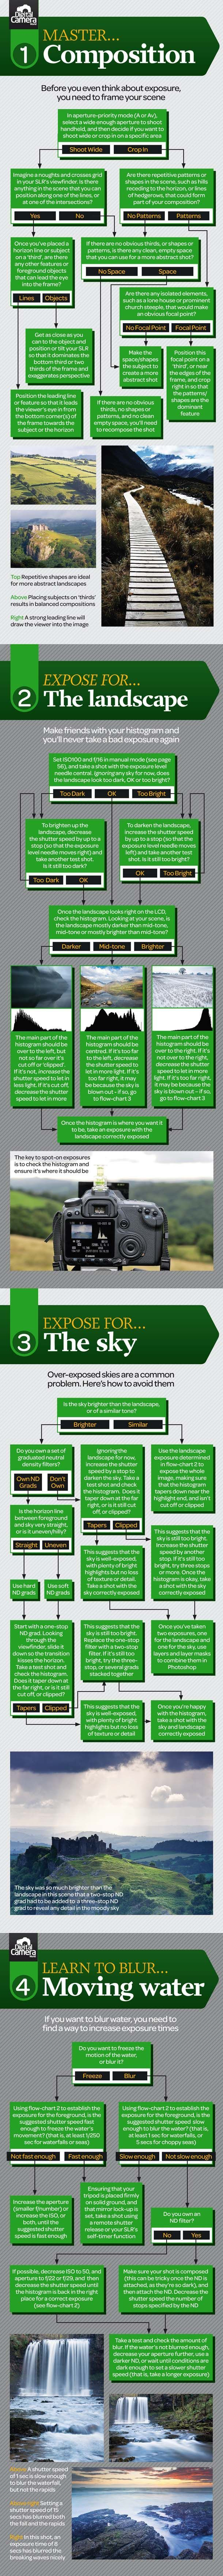 Landscape photography cheat sheet: step by step how to take the perfect landscape photo.